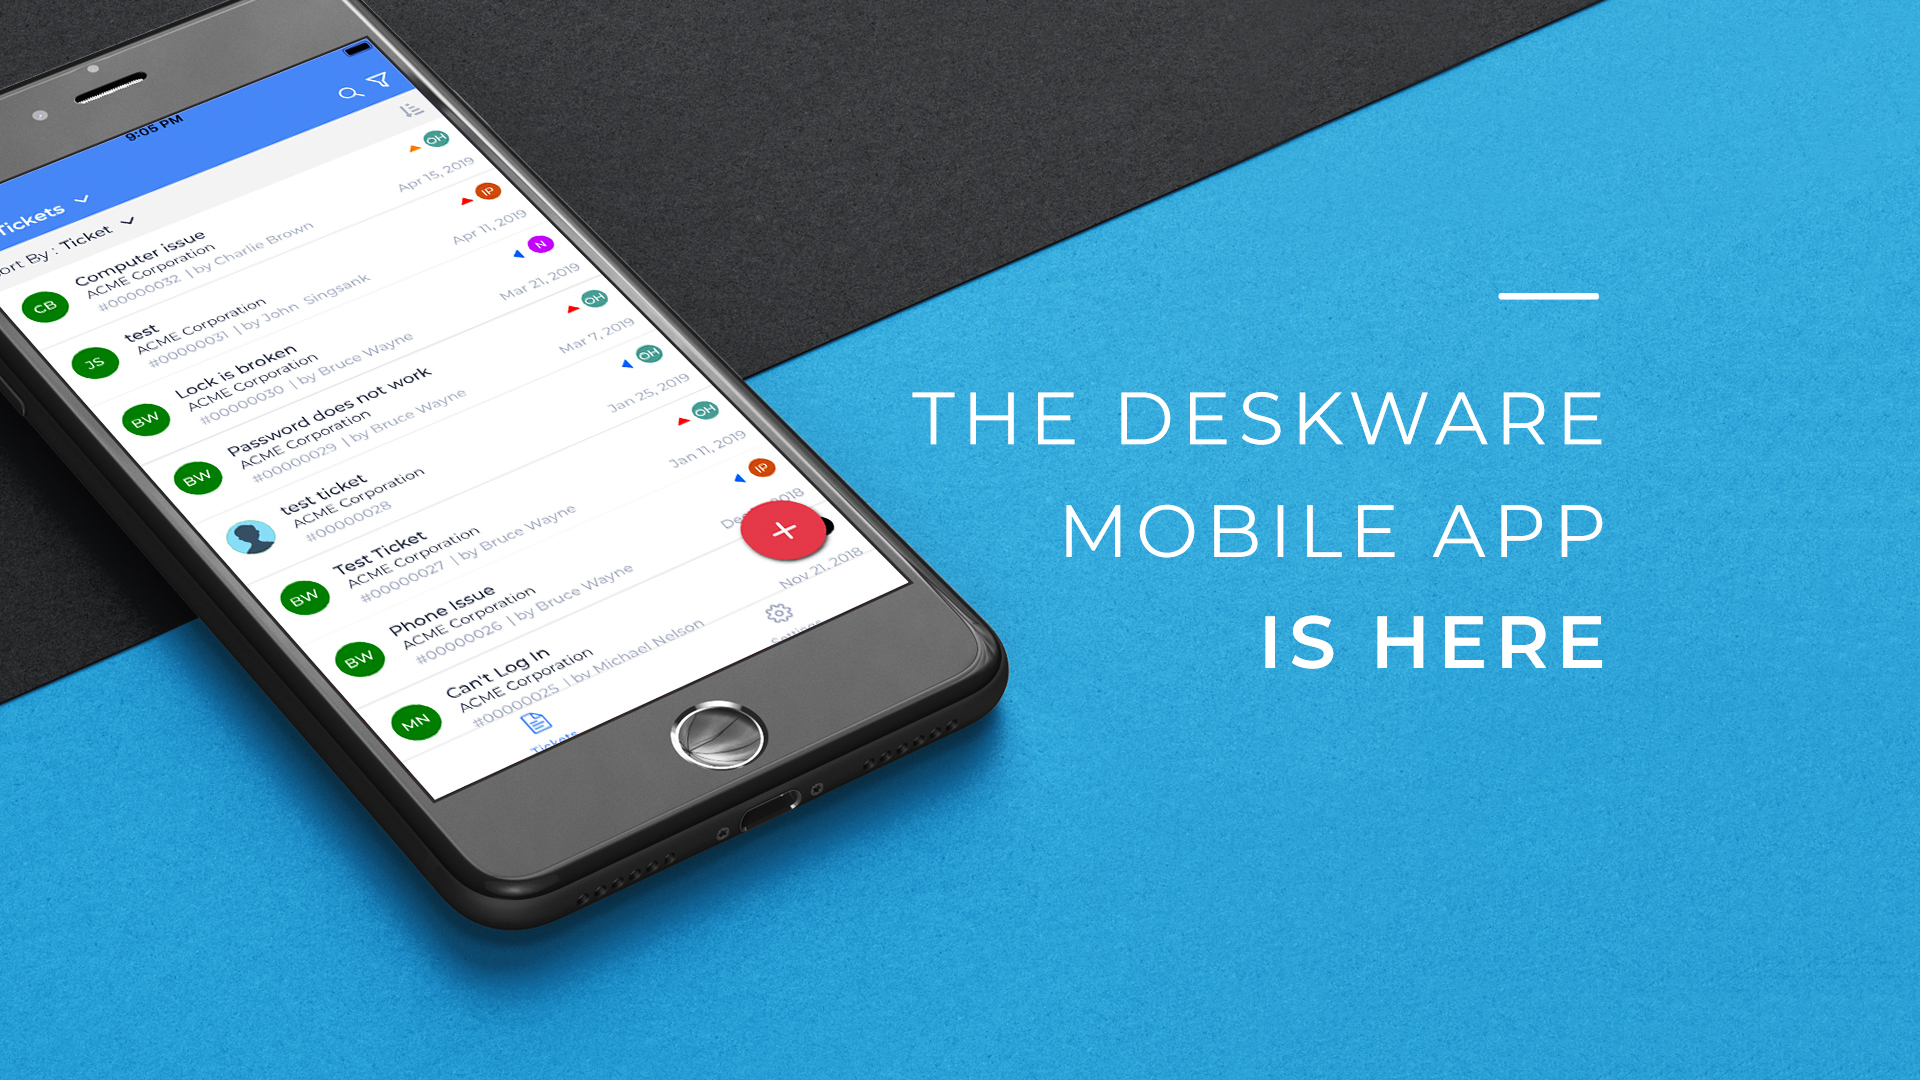 The Deskware Mobile App Is Here